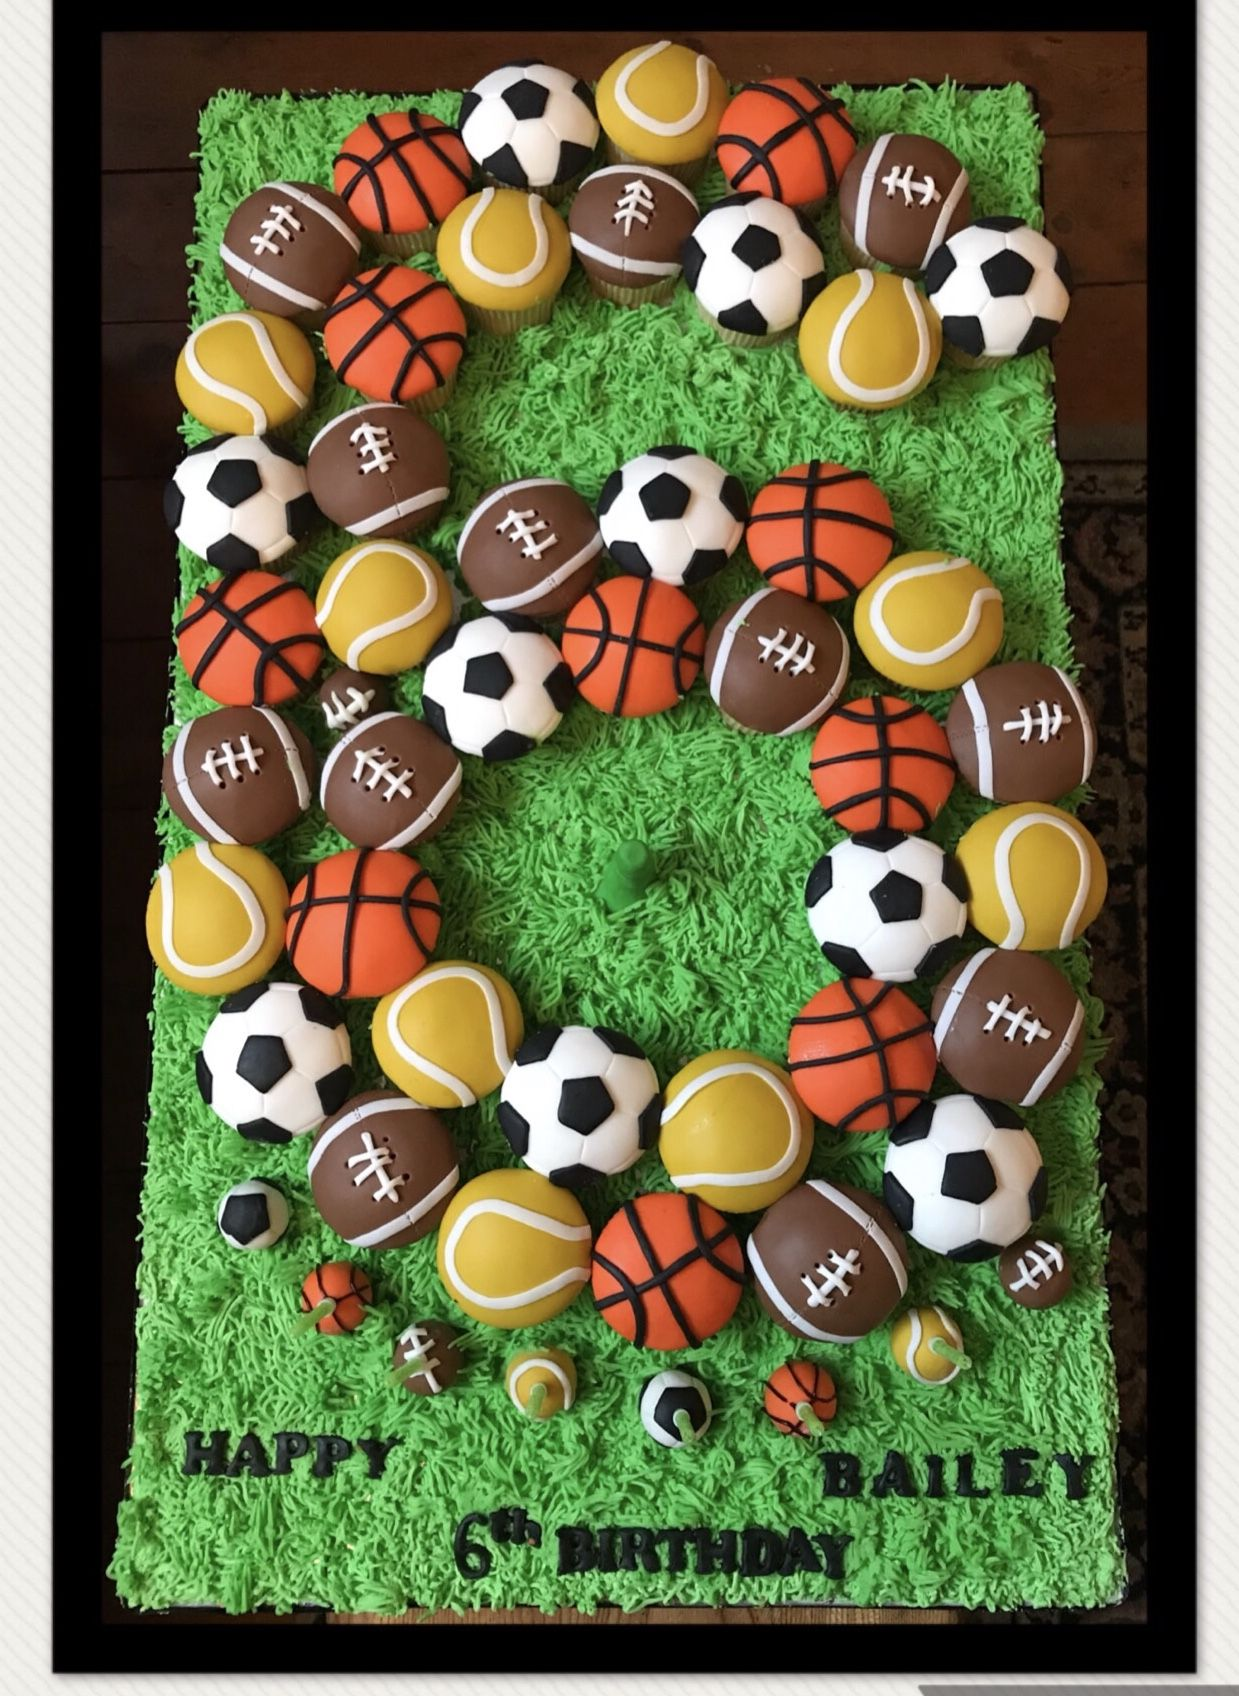 Swell Sports Multi Sports Cupcakes Football Basketball Tennis Rugby Funny Birthday Cards Online Elaedamsfinfo